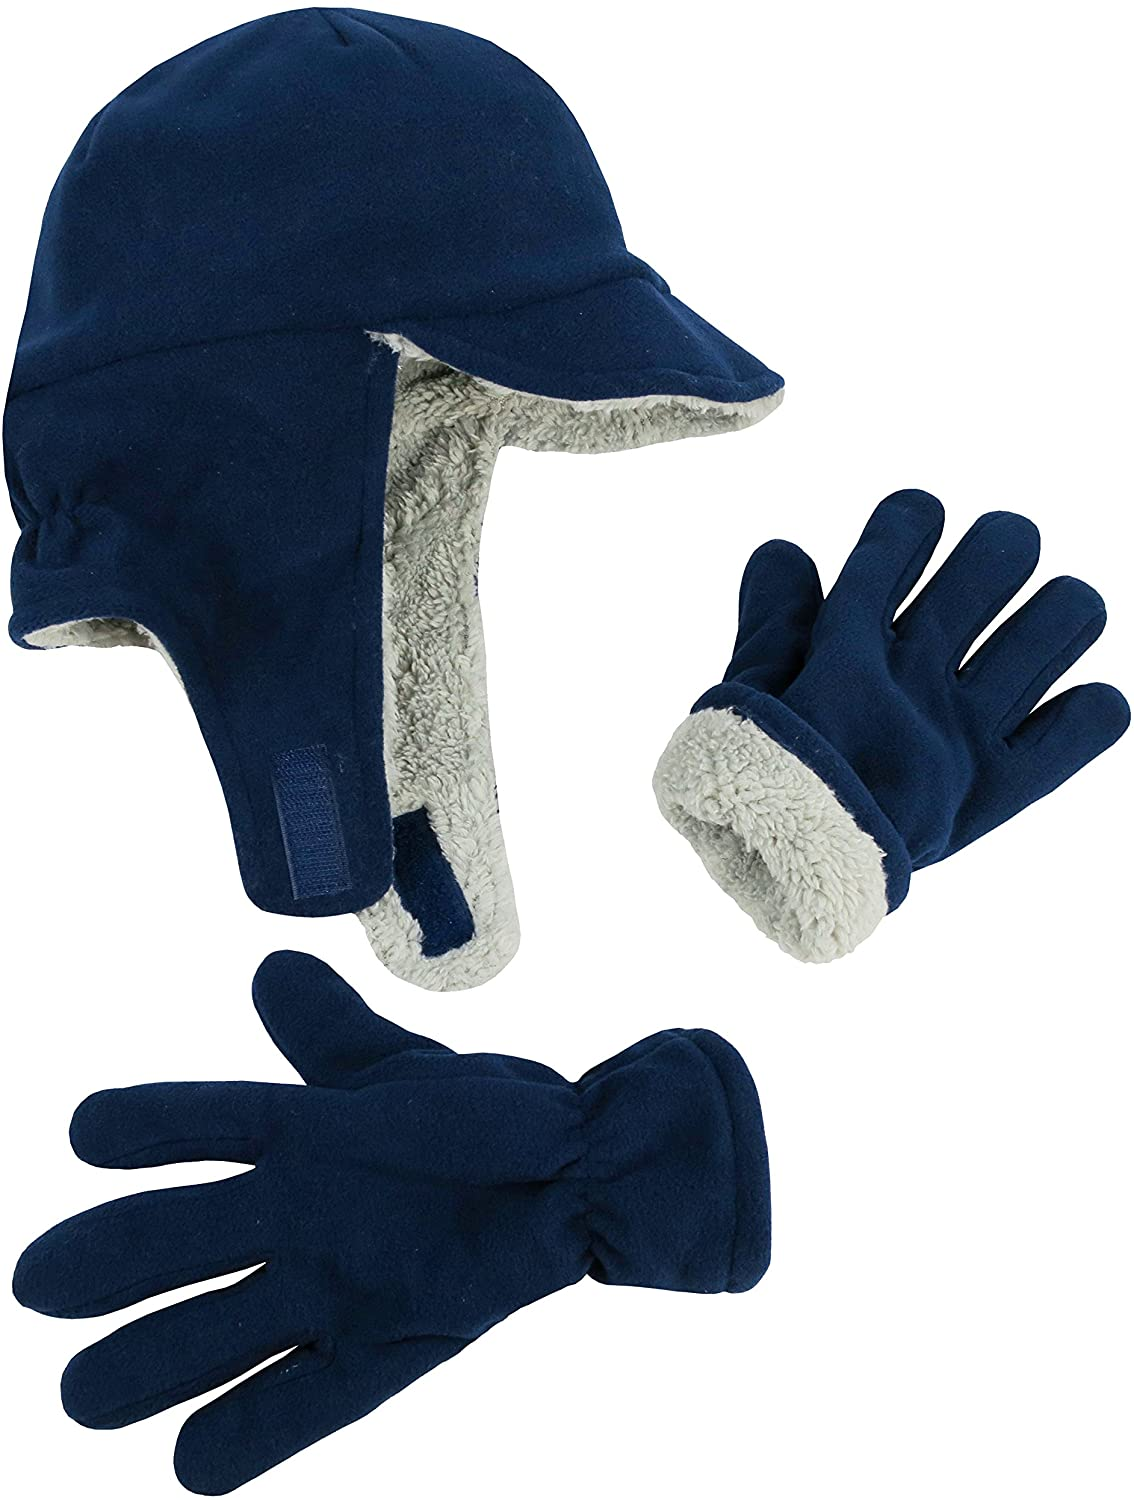 N'Ice Caps Boys Girls Warm Double Layered Lined Hat and Gloves Winter Snow Set